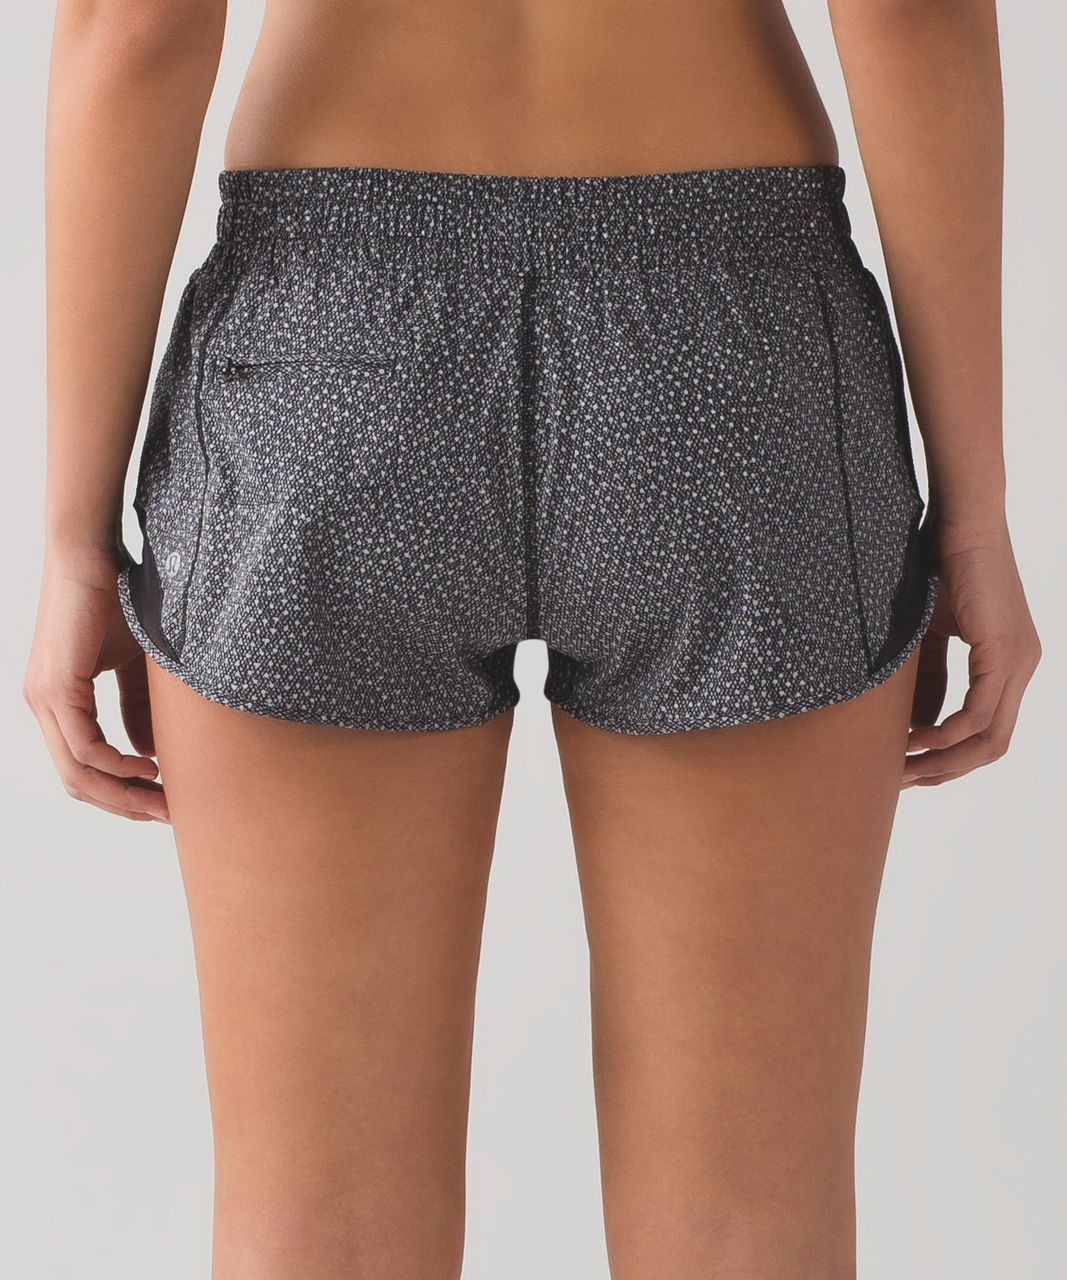 "Lululemon Hotty Hot Short (Reflective) (2 1/2"") - Frozen Fizz Reflective Silver"